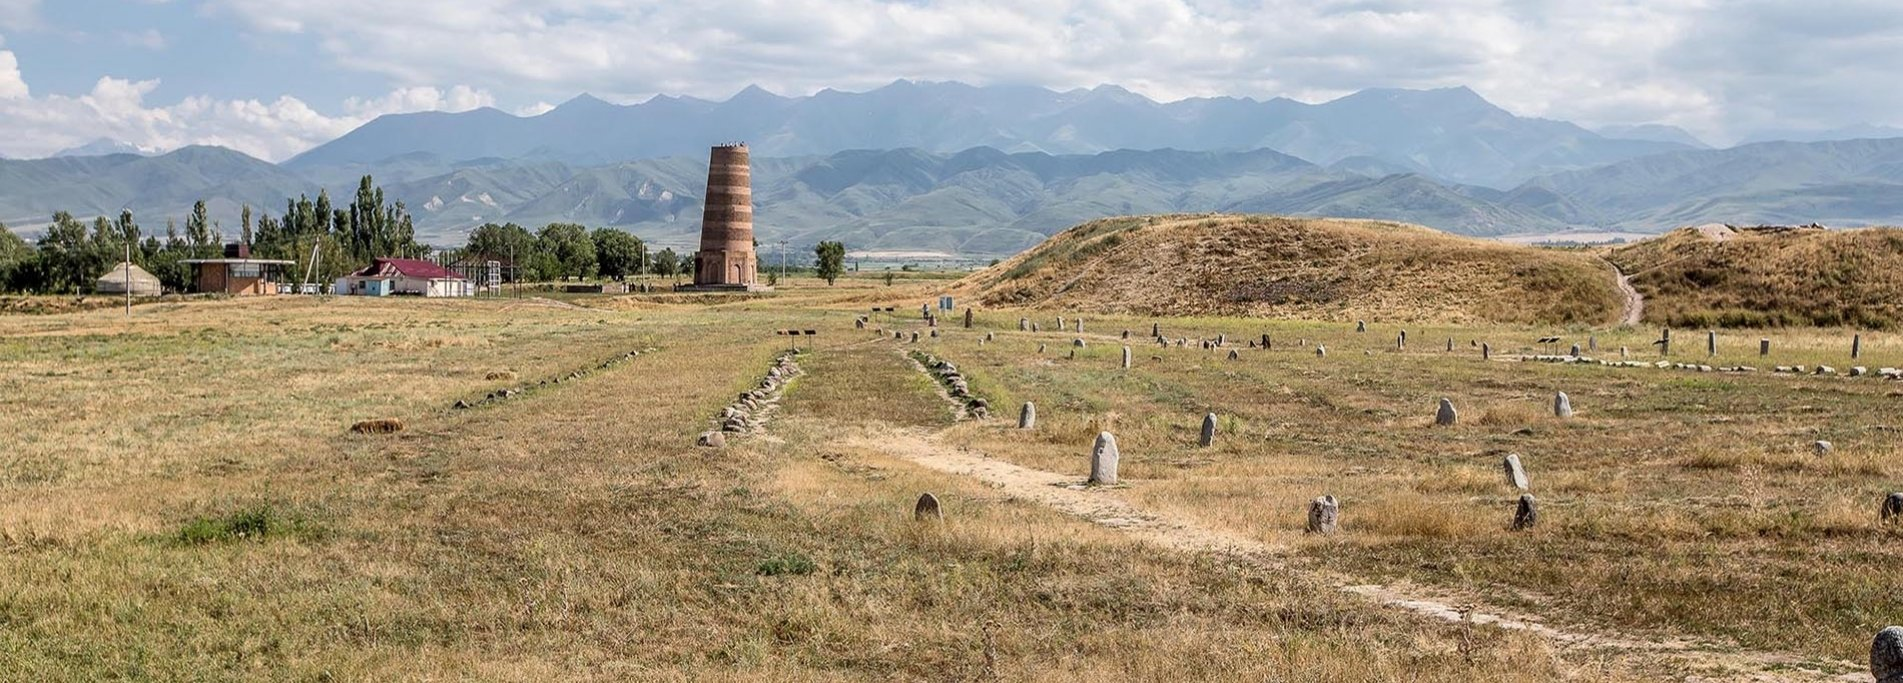 Burana tower  - Historical and archaeological complex